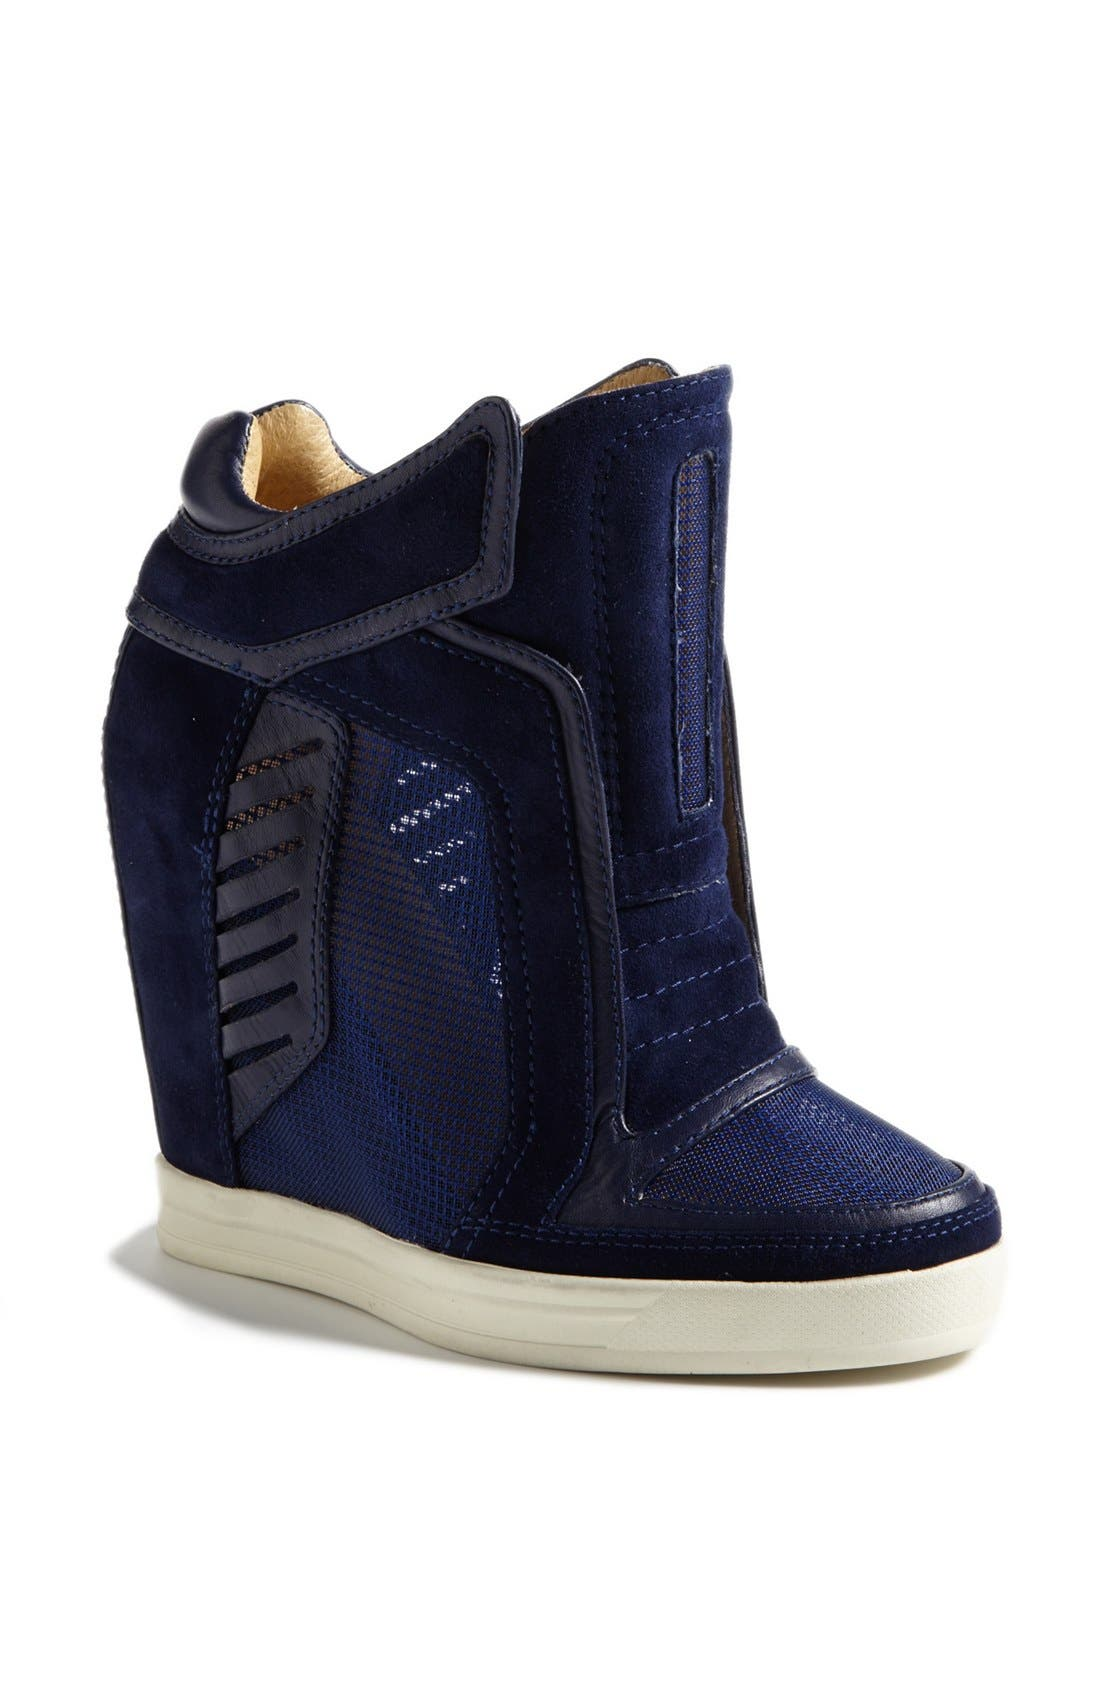 Main Image - L.A.M.B. 'Freeda' High Top Sneaker (Online Only)